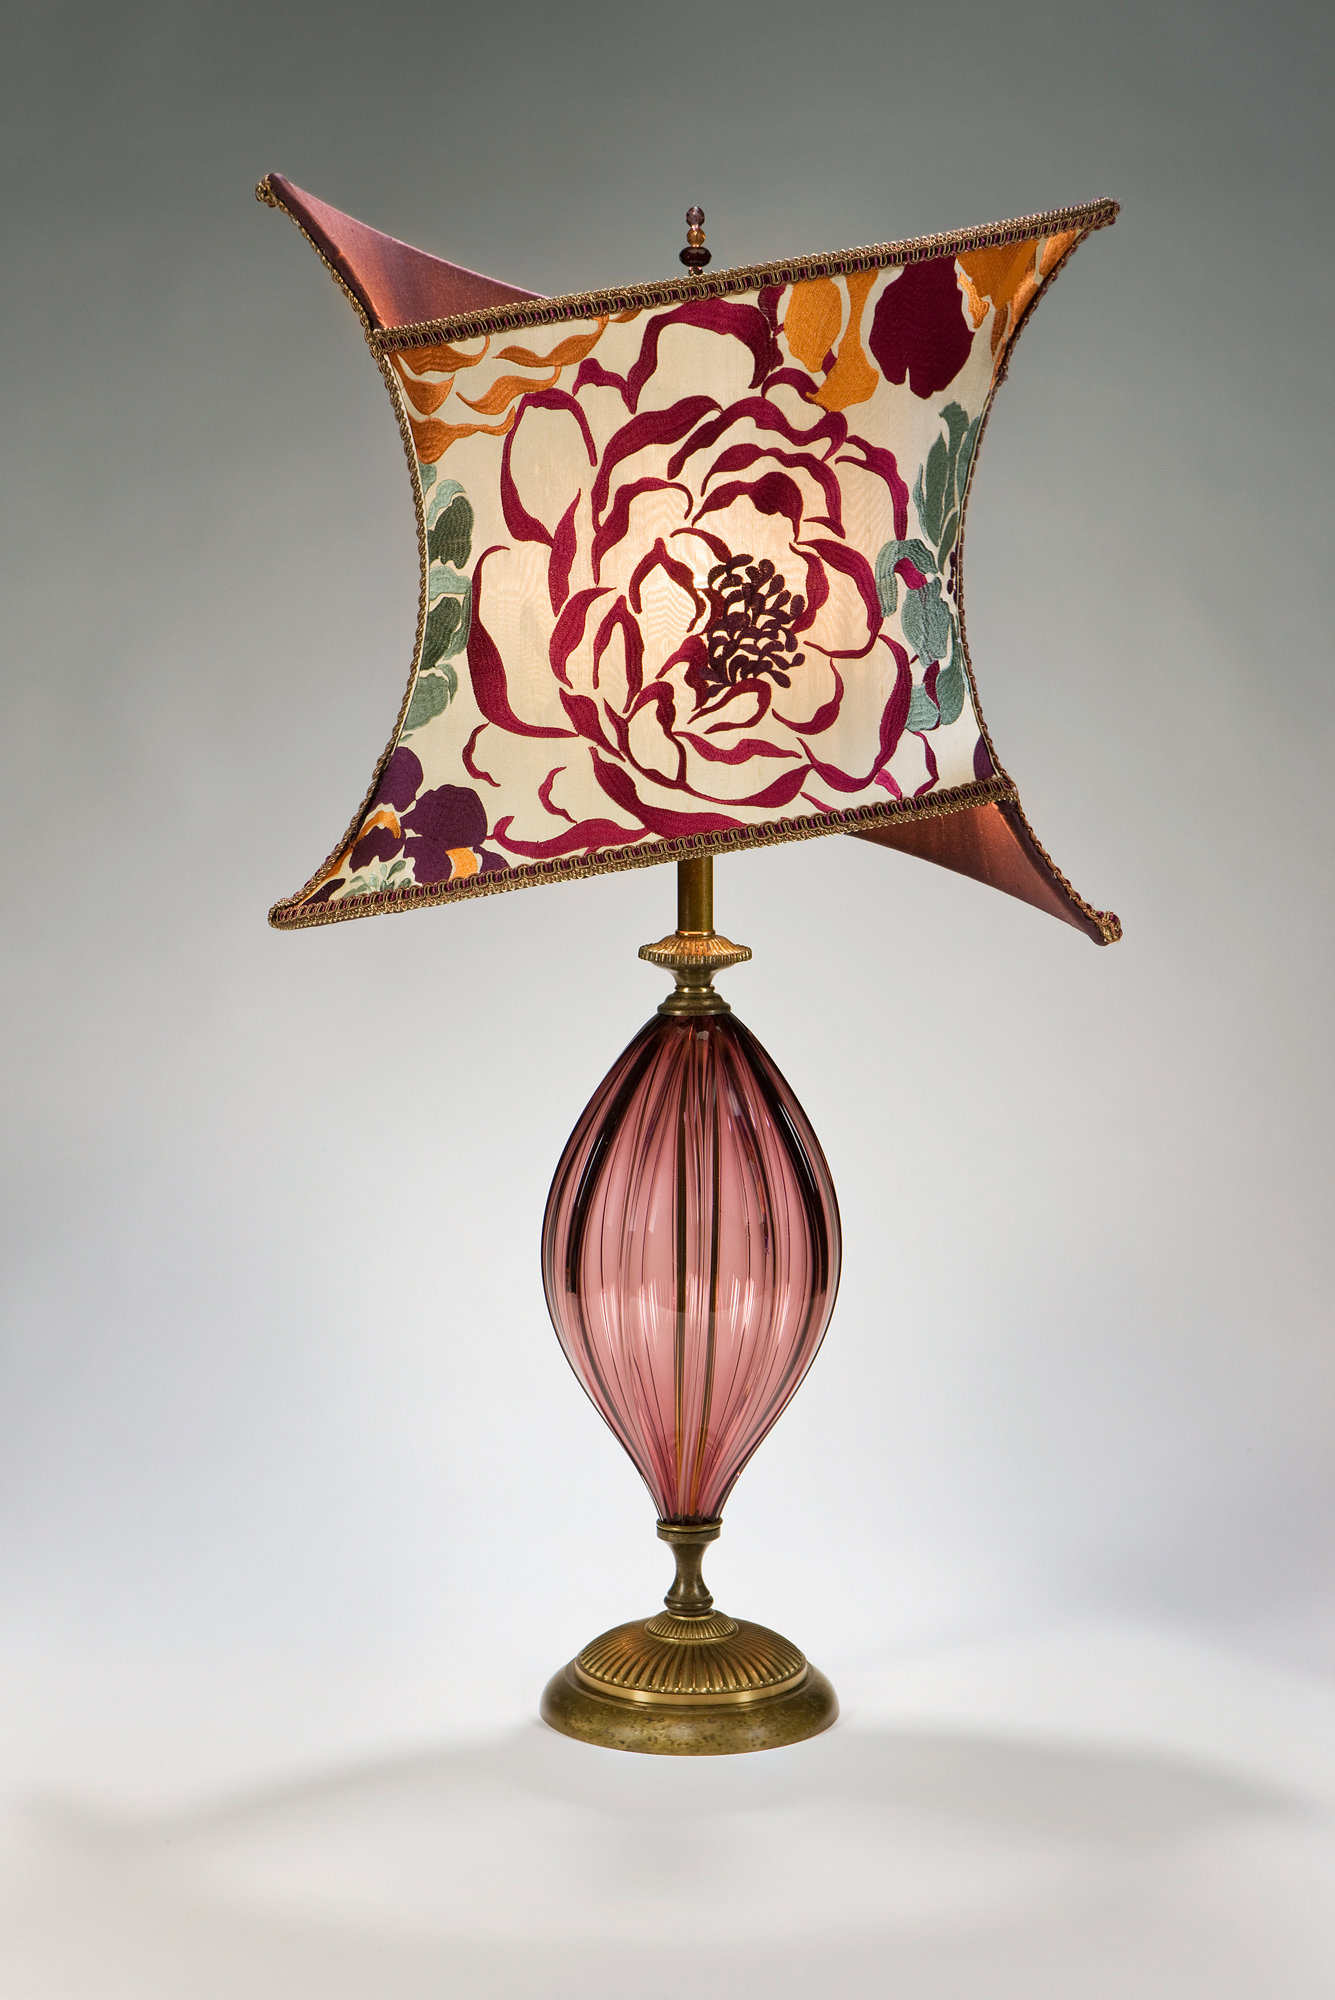 Tori - Mixed-Media Table Lamp - by Caryn Kinzig and Susan Kinzig